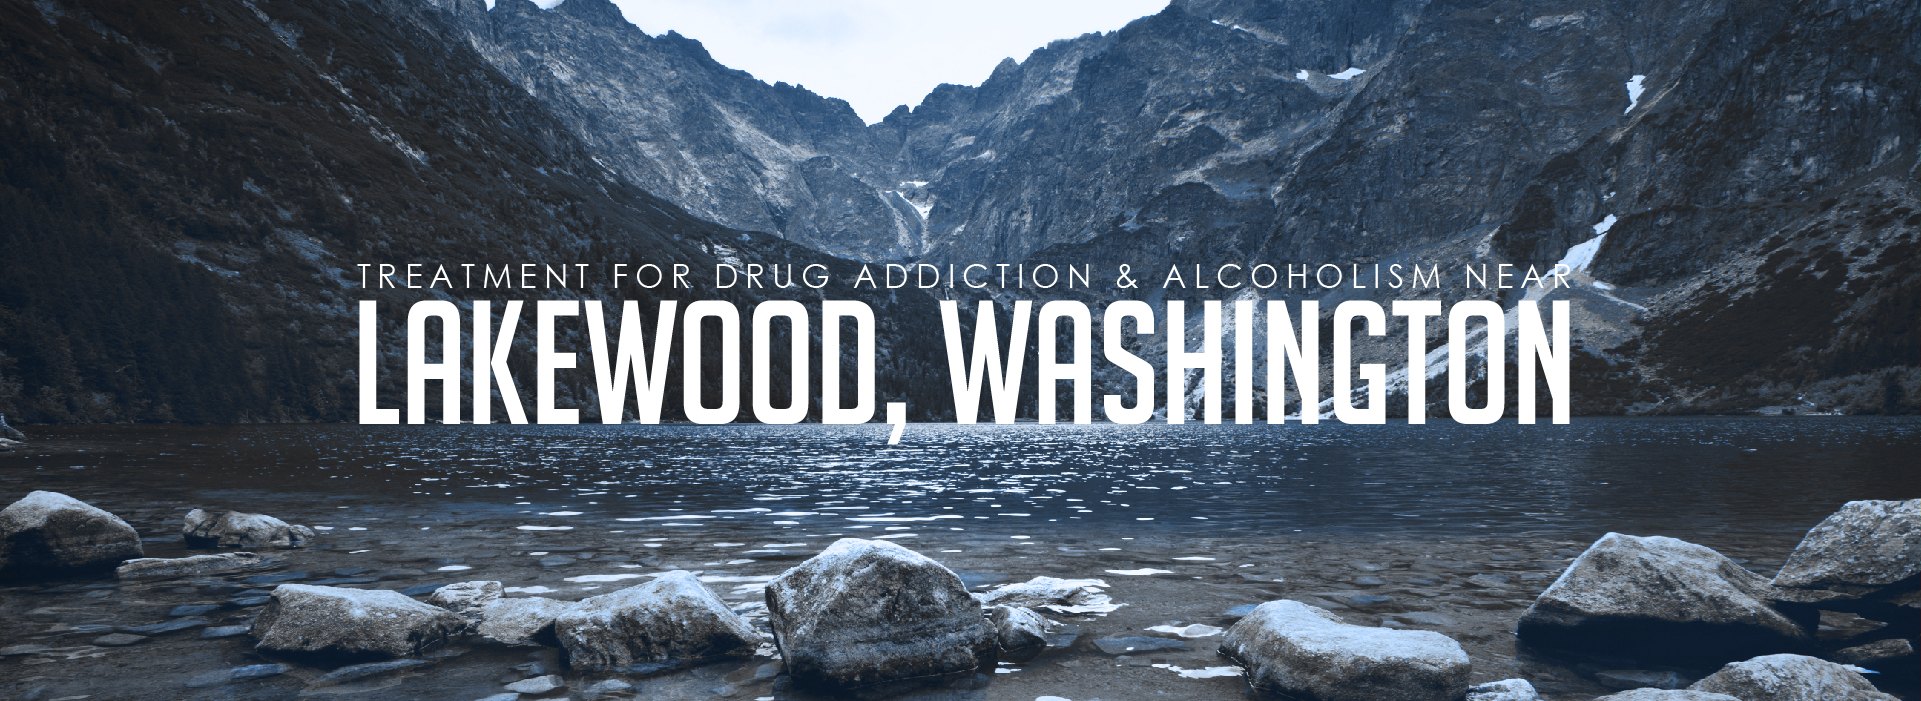 Lakewood, Washington Addiction Header